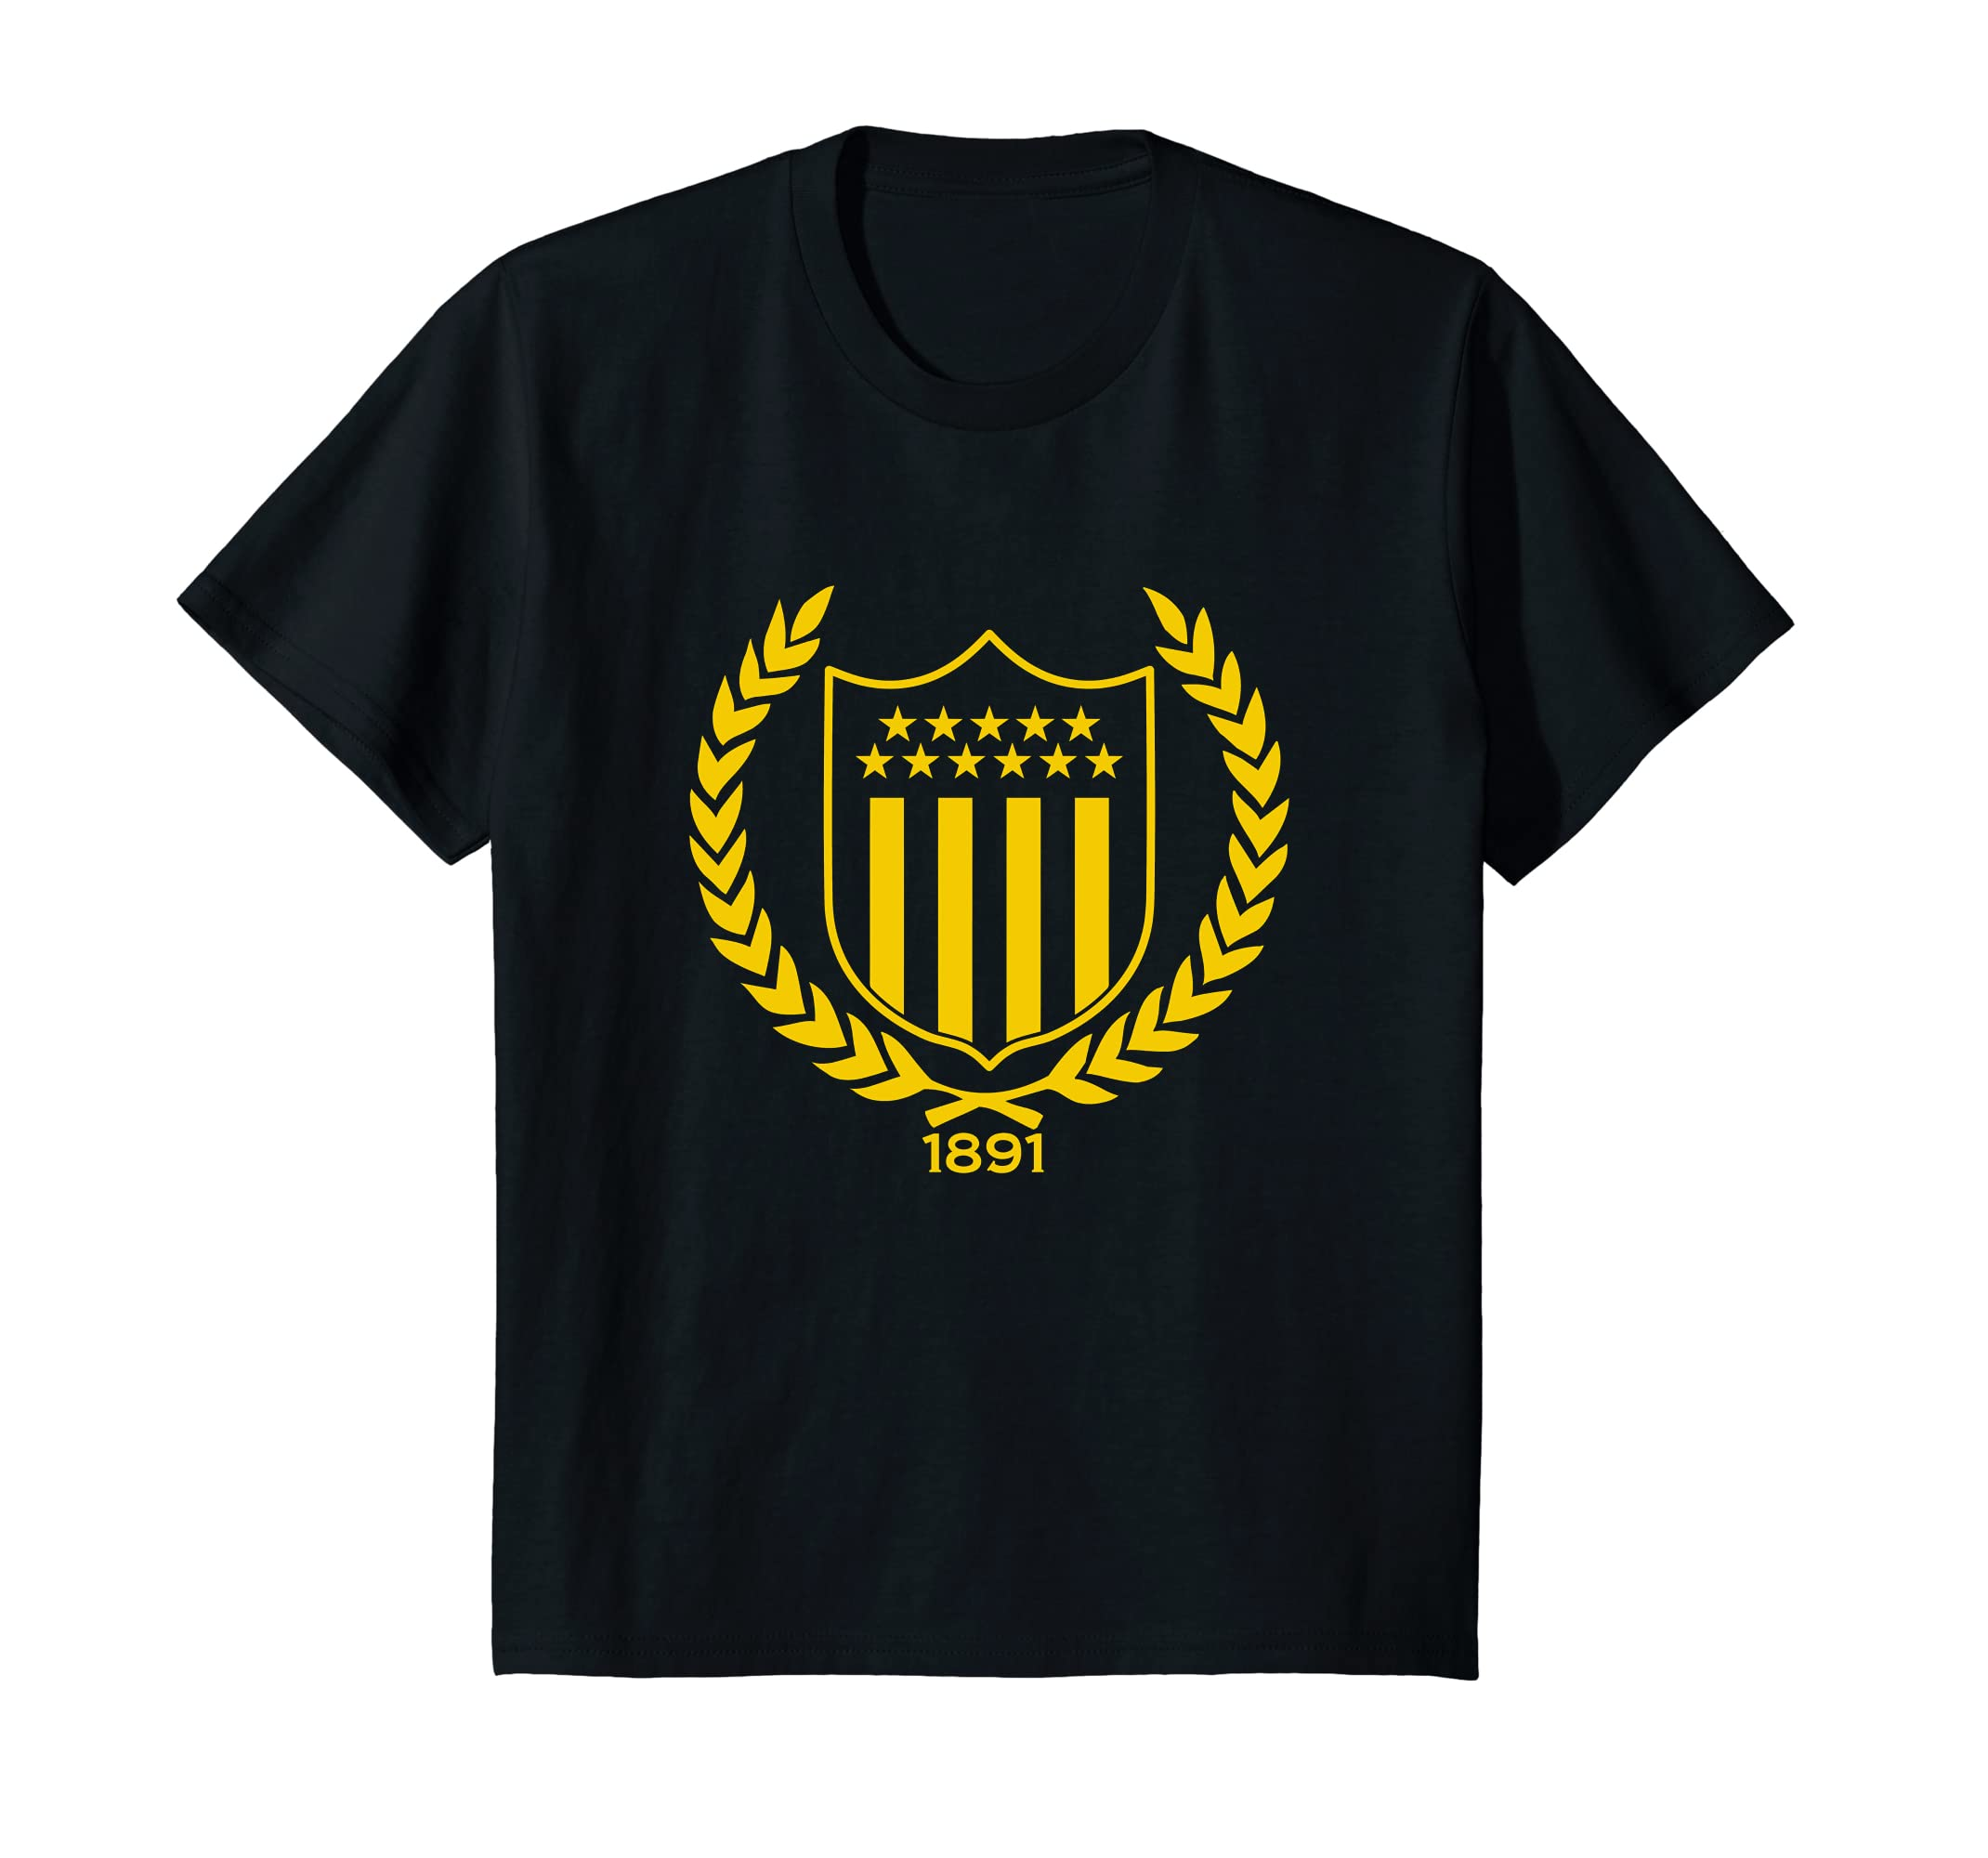 Amazon.com: Club Atletico Penarol Uruguay Camiseta TShirt Jersey Manya: Clothing